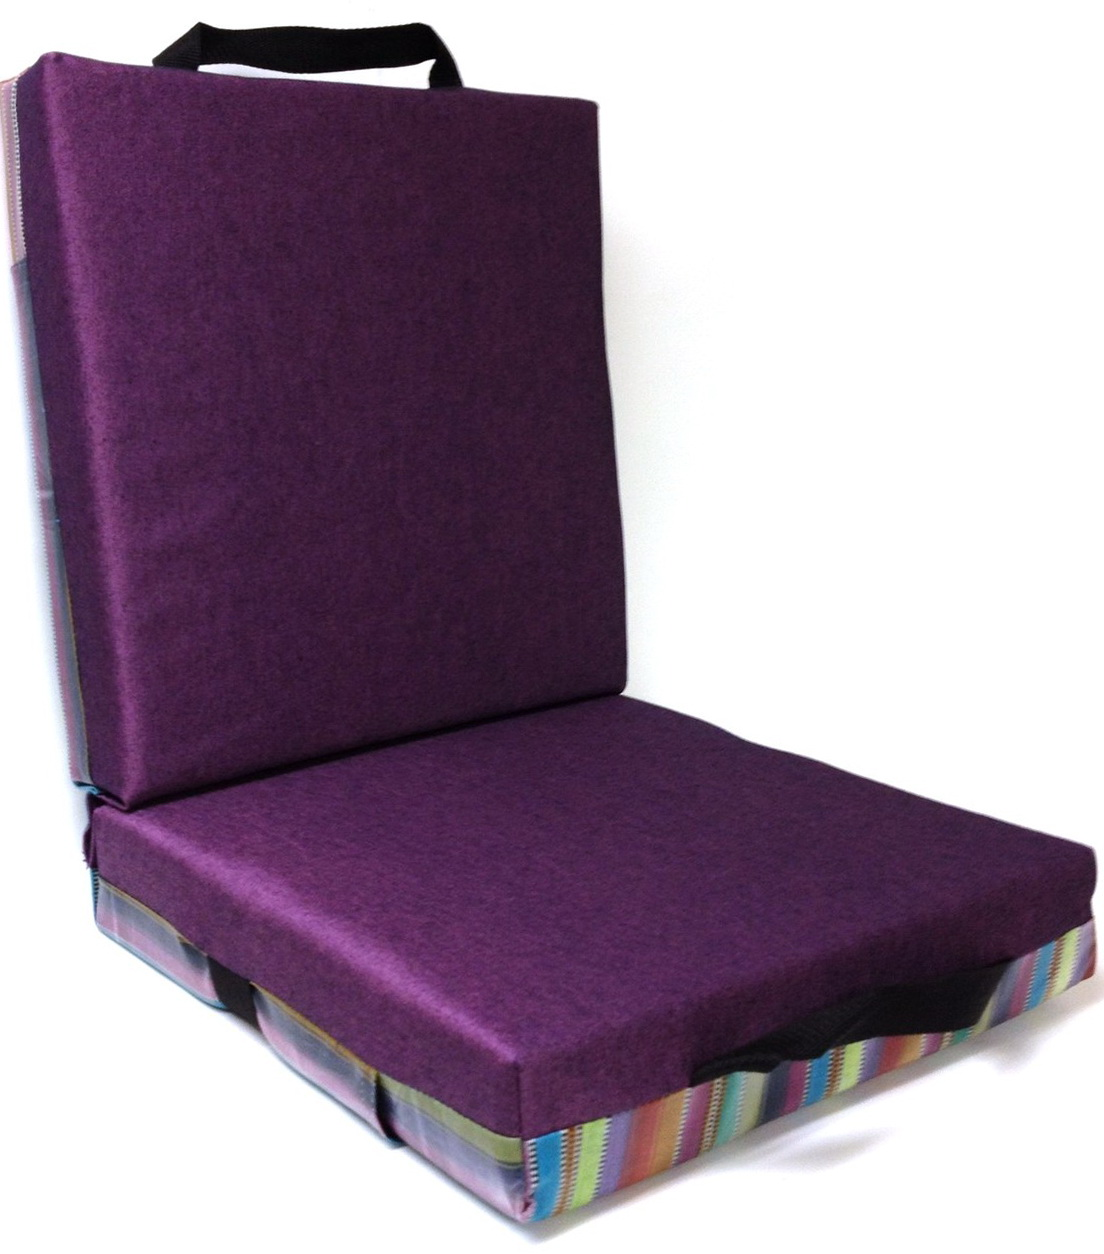 Purple Chair Cushions And Pads Home Design Ideas